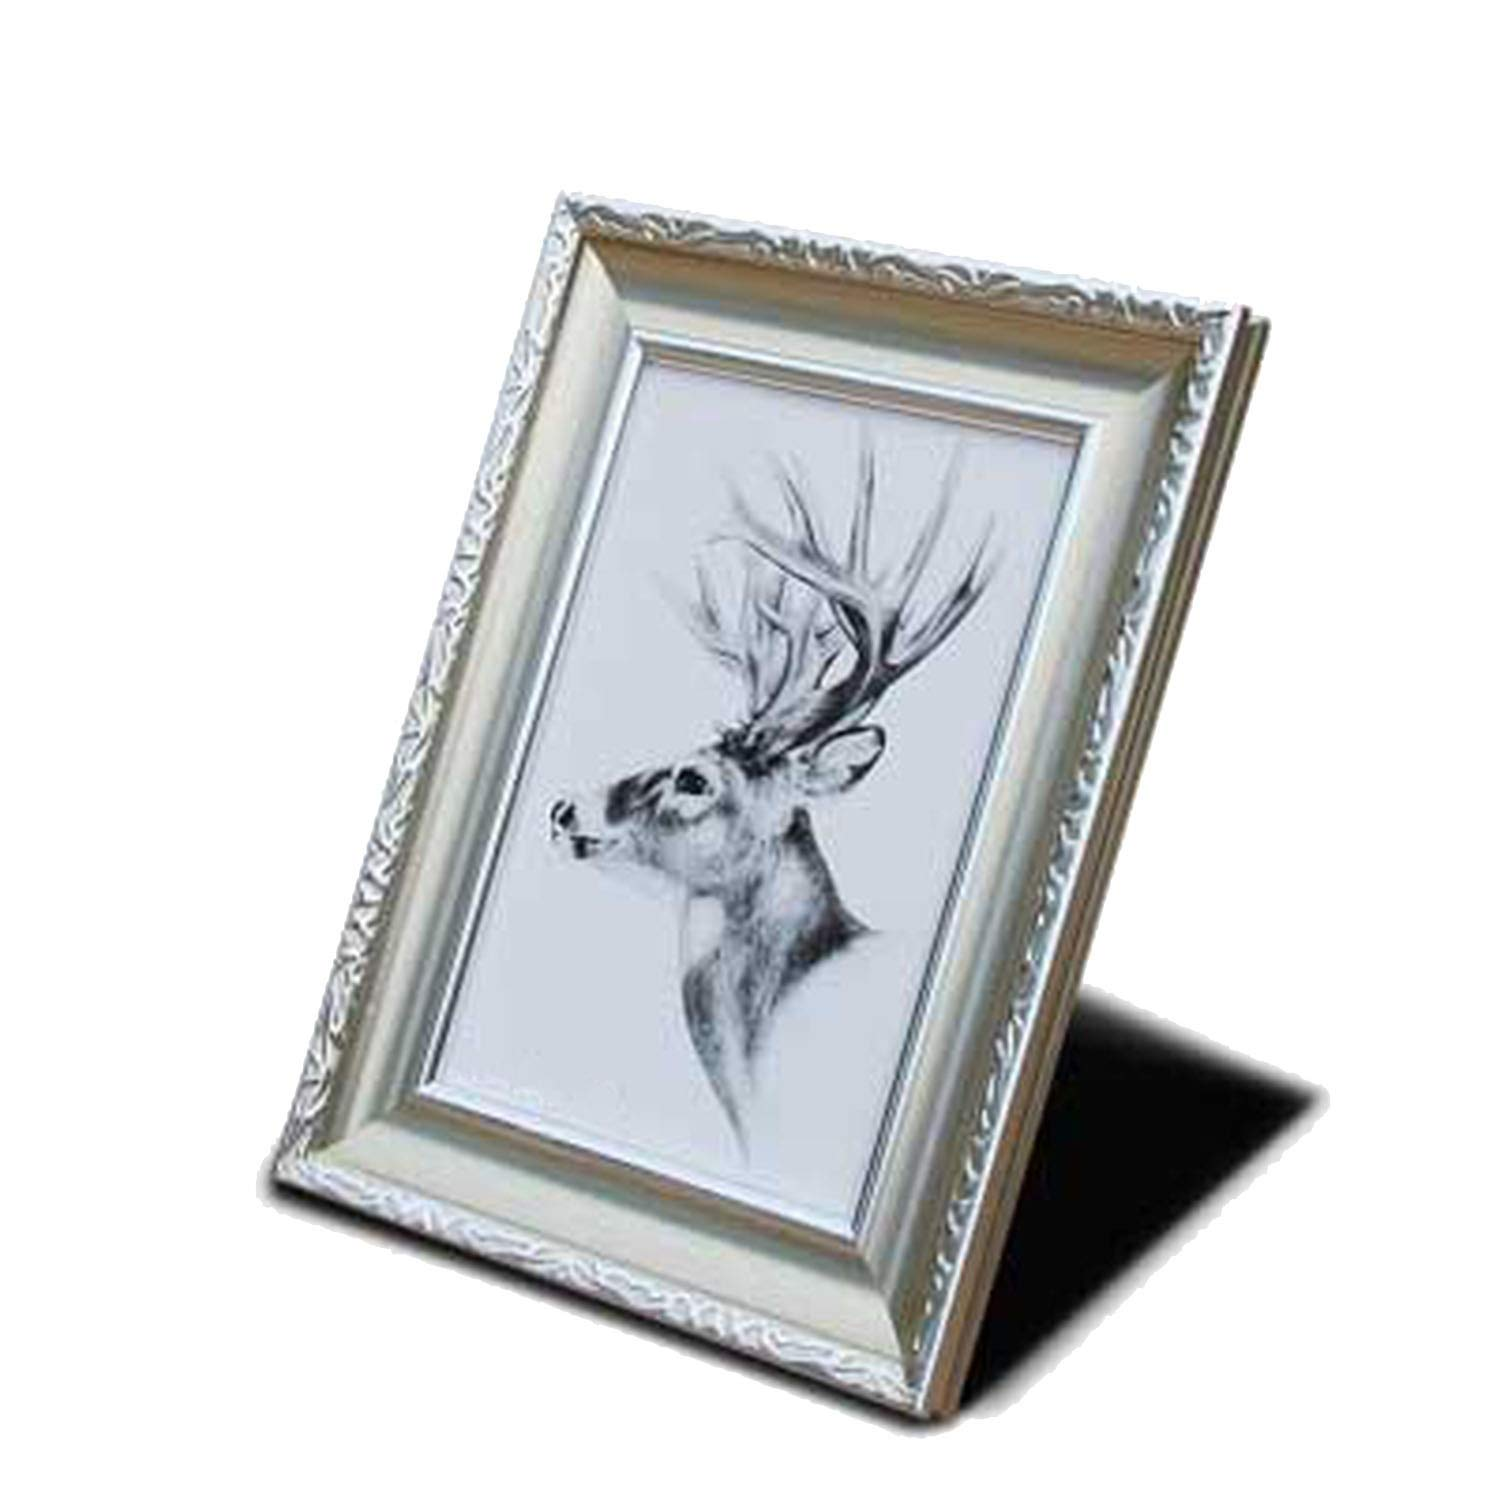 craft and down Photo Frame Wall Frame Friendly Environmental Resin Photo Frame Vintage Color Frame on Table Living Room Bedroom Home Decor,03,12.7x8.9cm